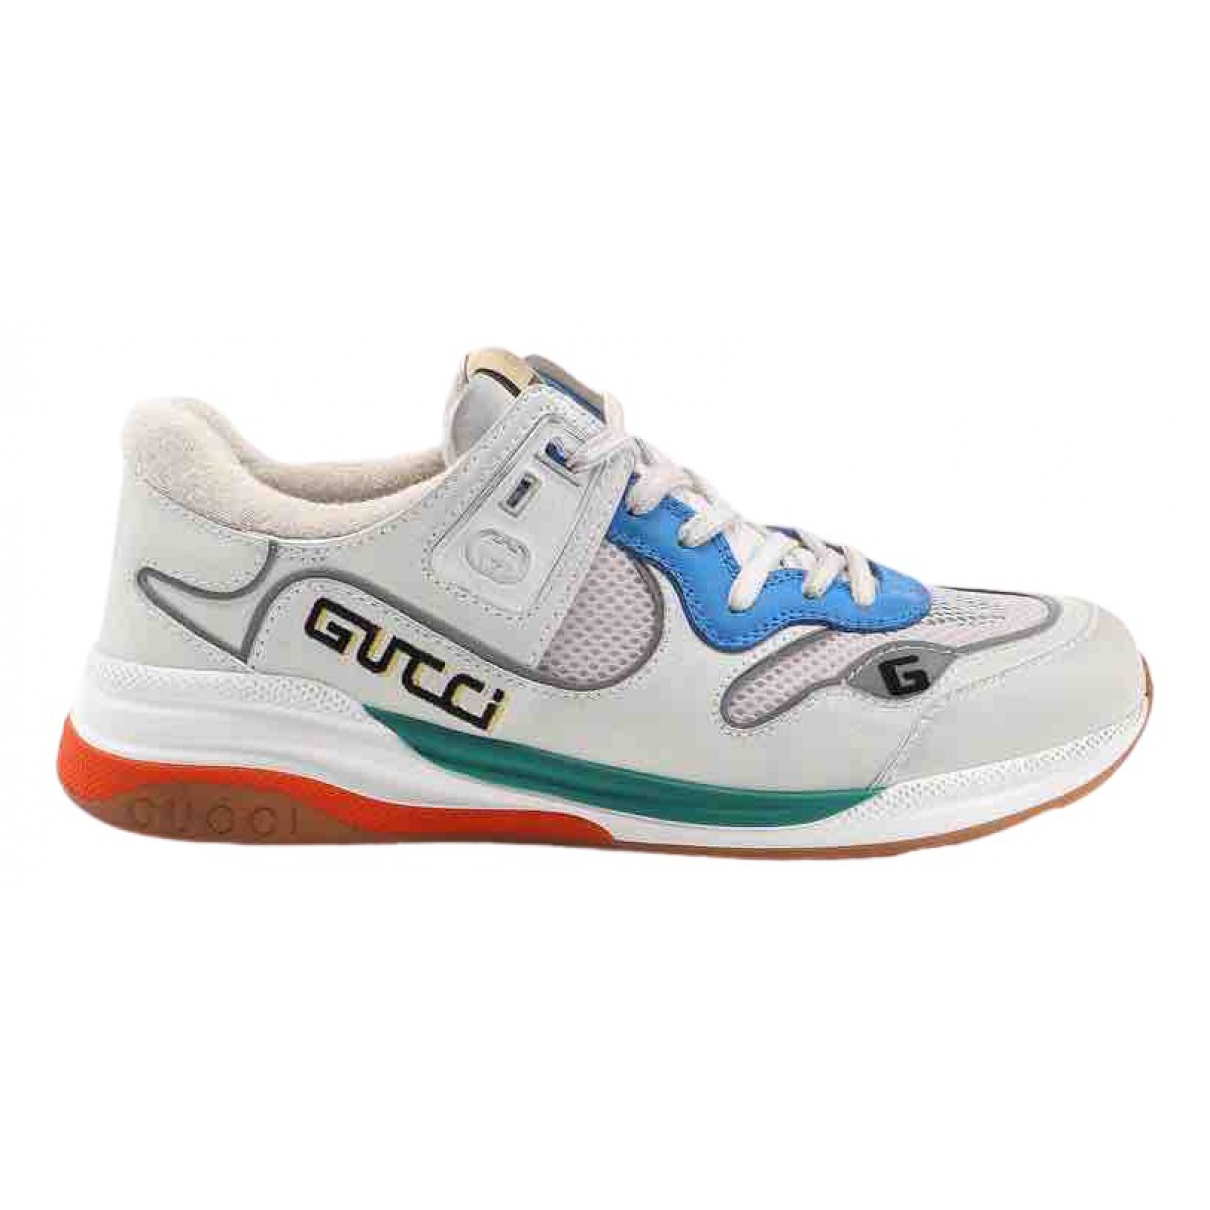 Gucci Ultrapace Sneakers in  Bunt Leder